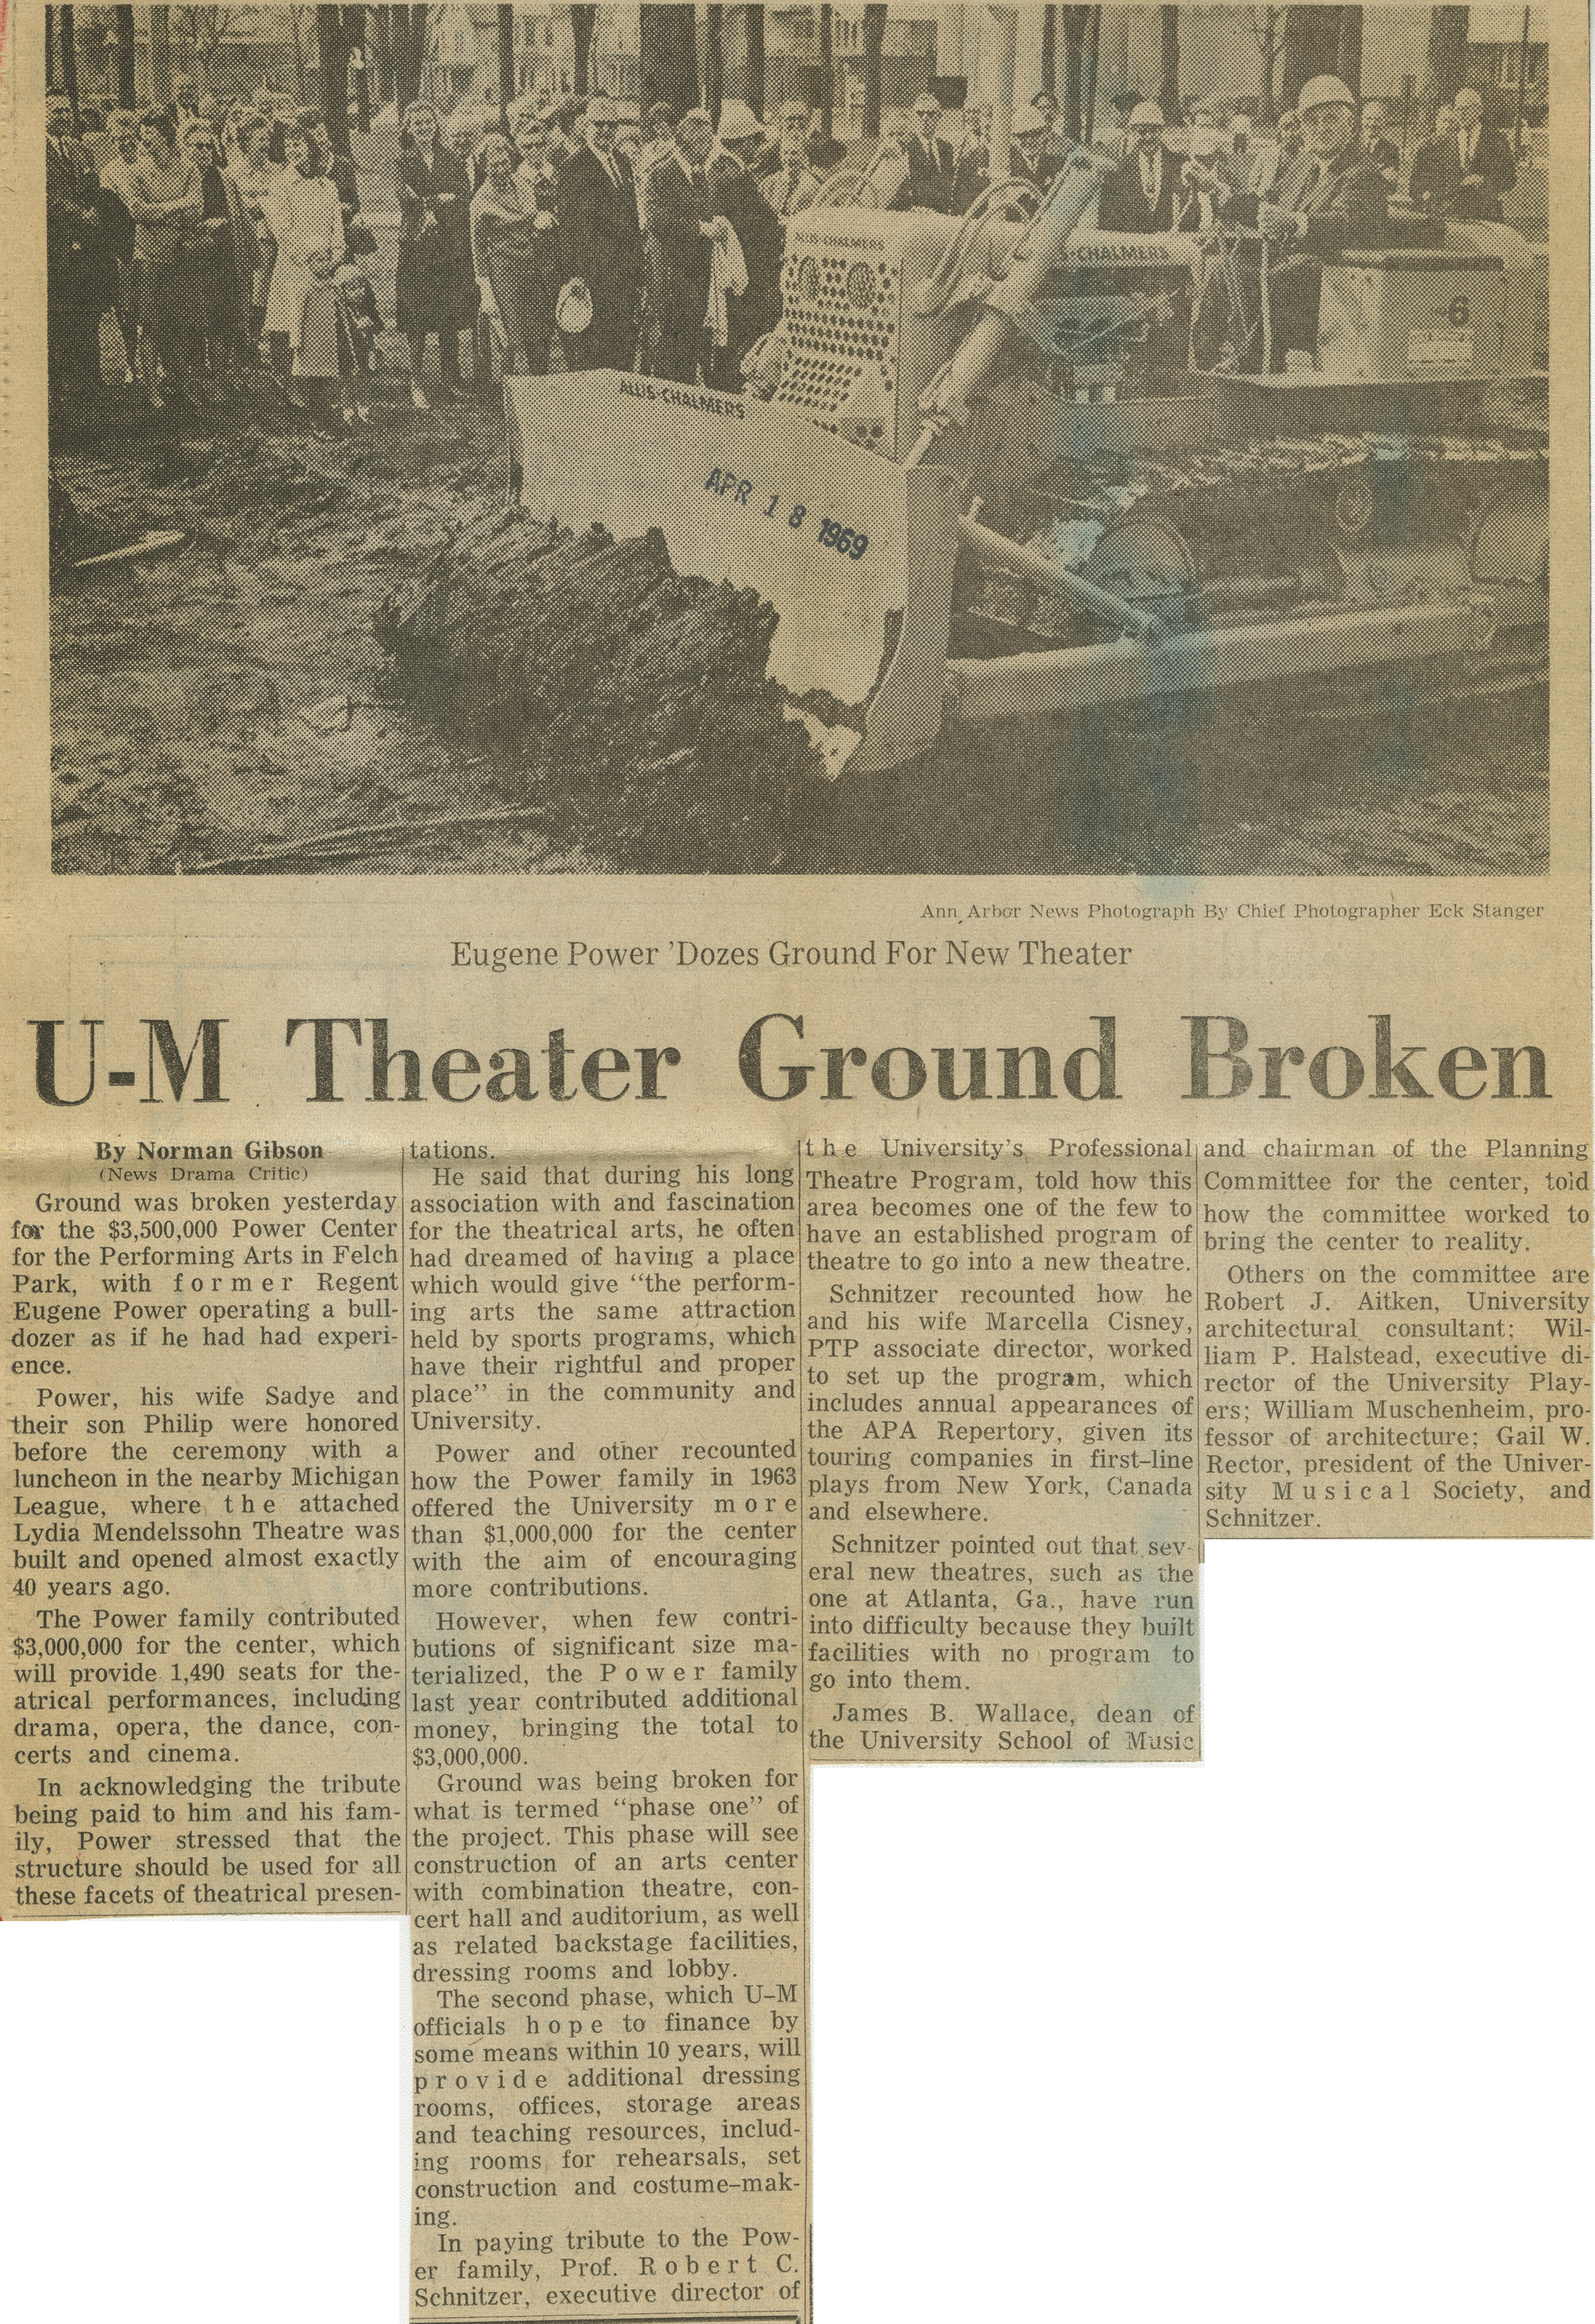 U-M Theater Ground Broken image